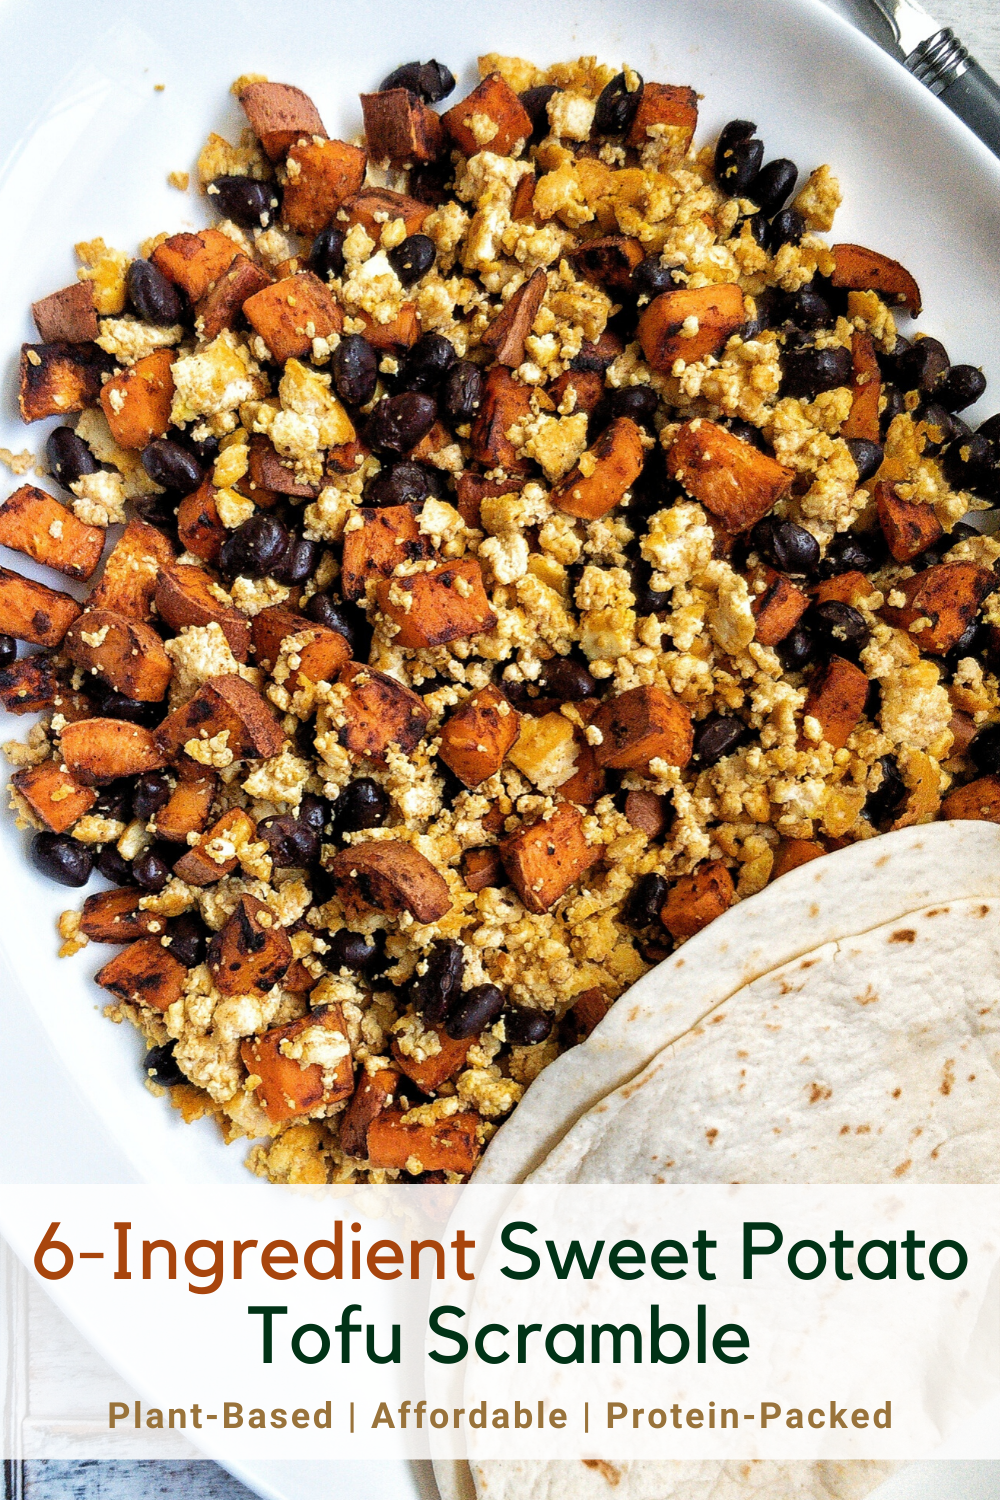 A platter with tofu scramble loaded with sweet potato, black beans, and a side of tortillas